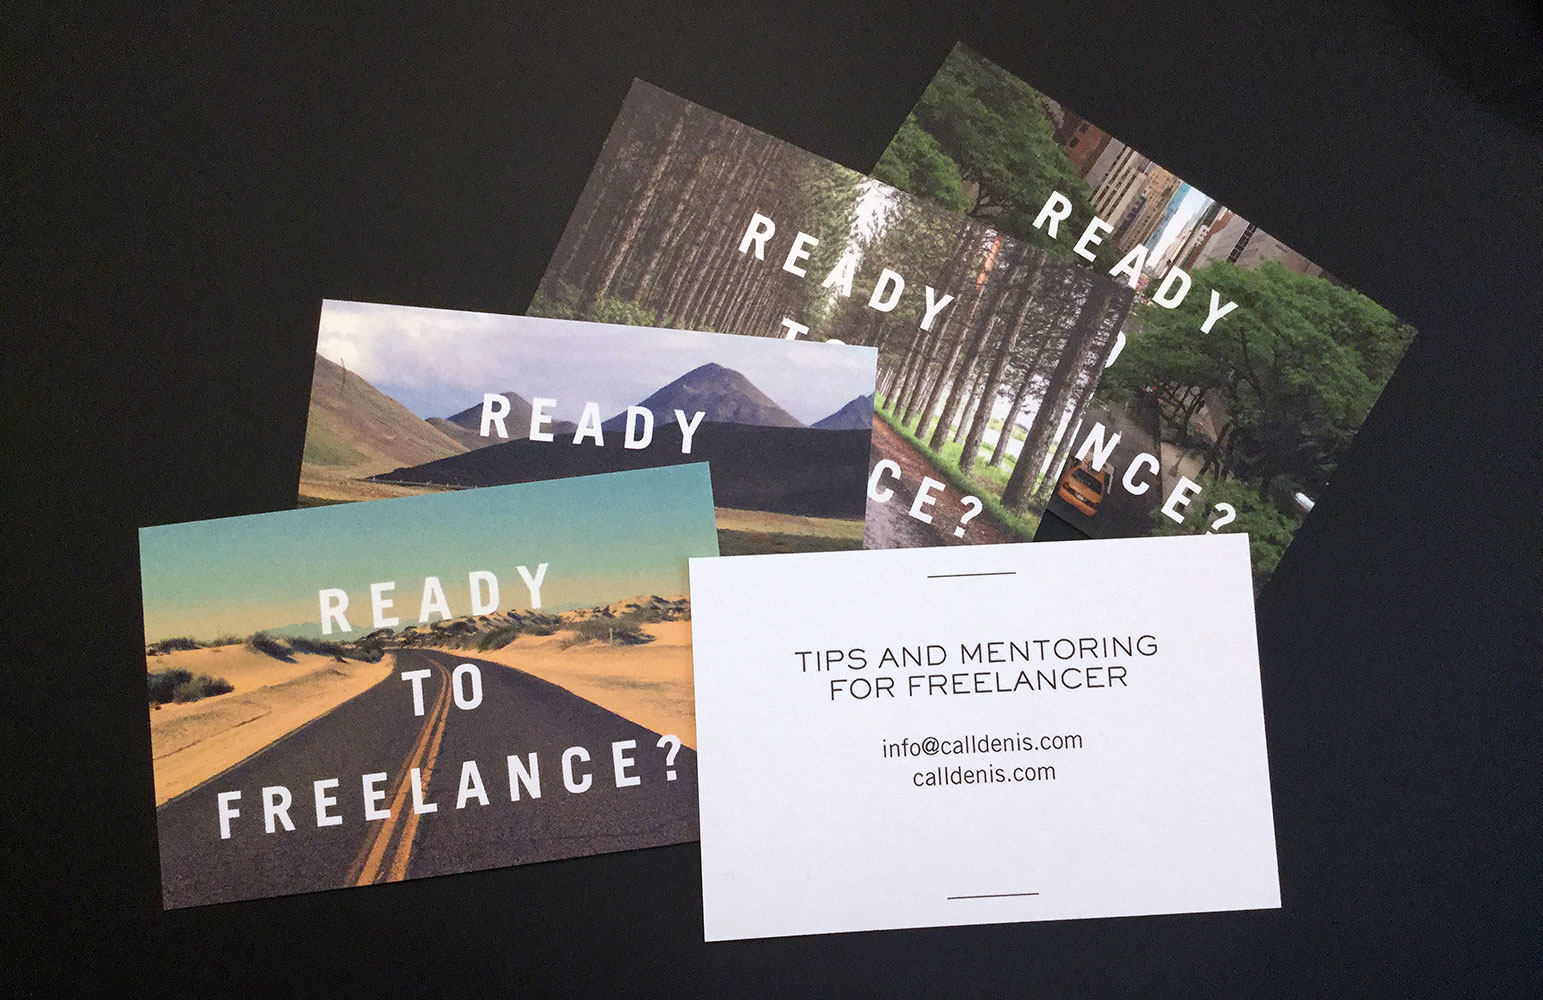 Coaching mentoring for new freelance